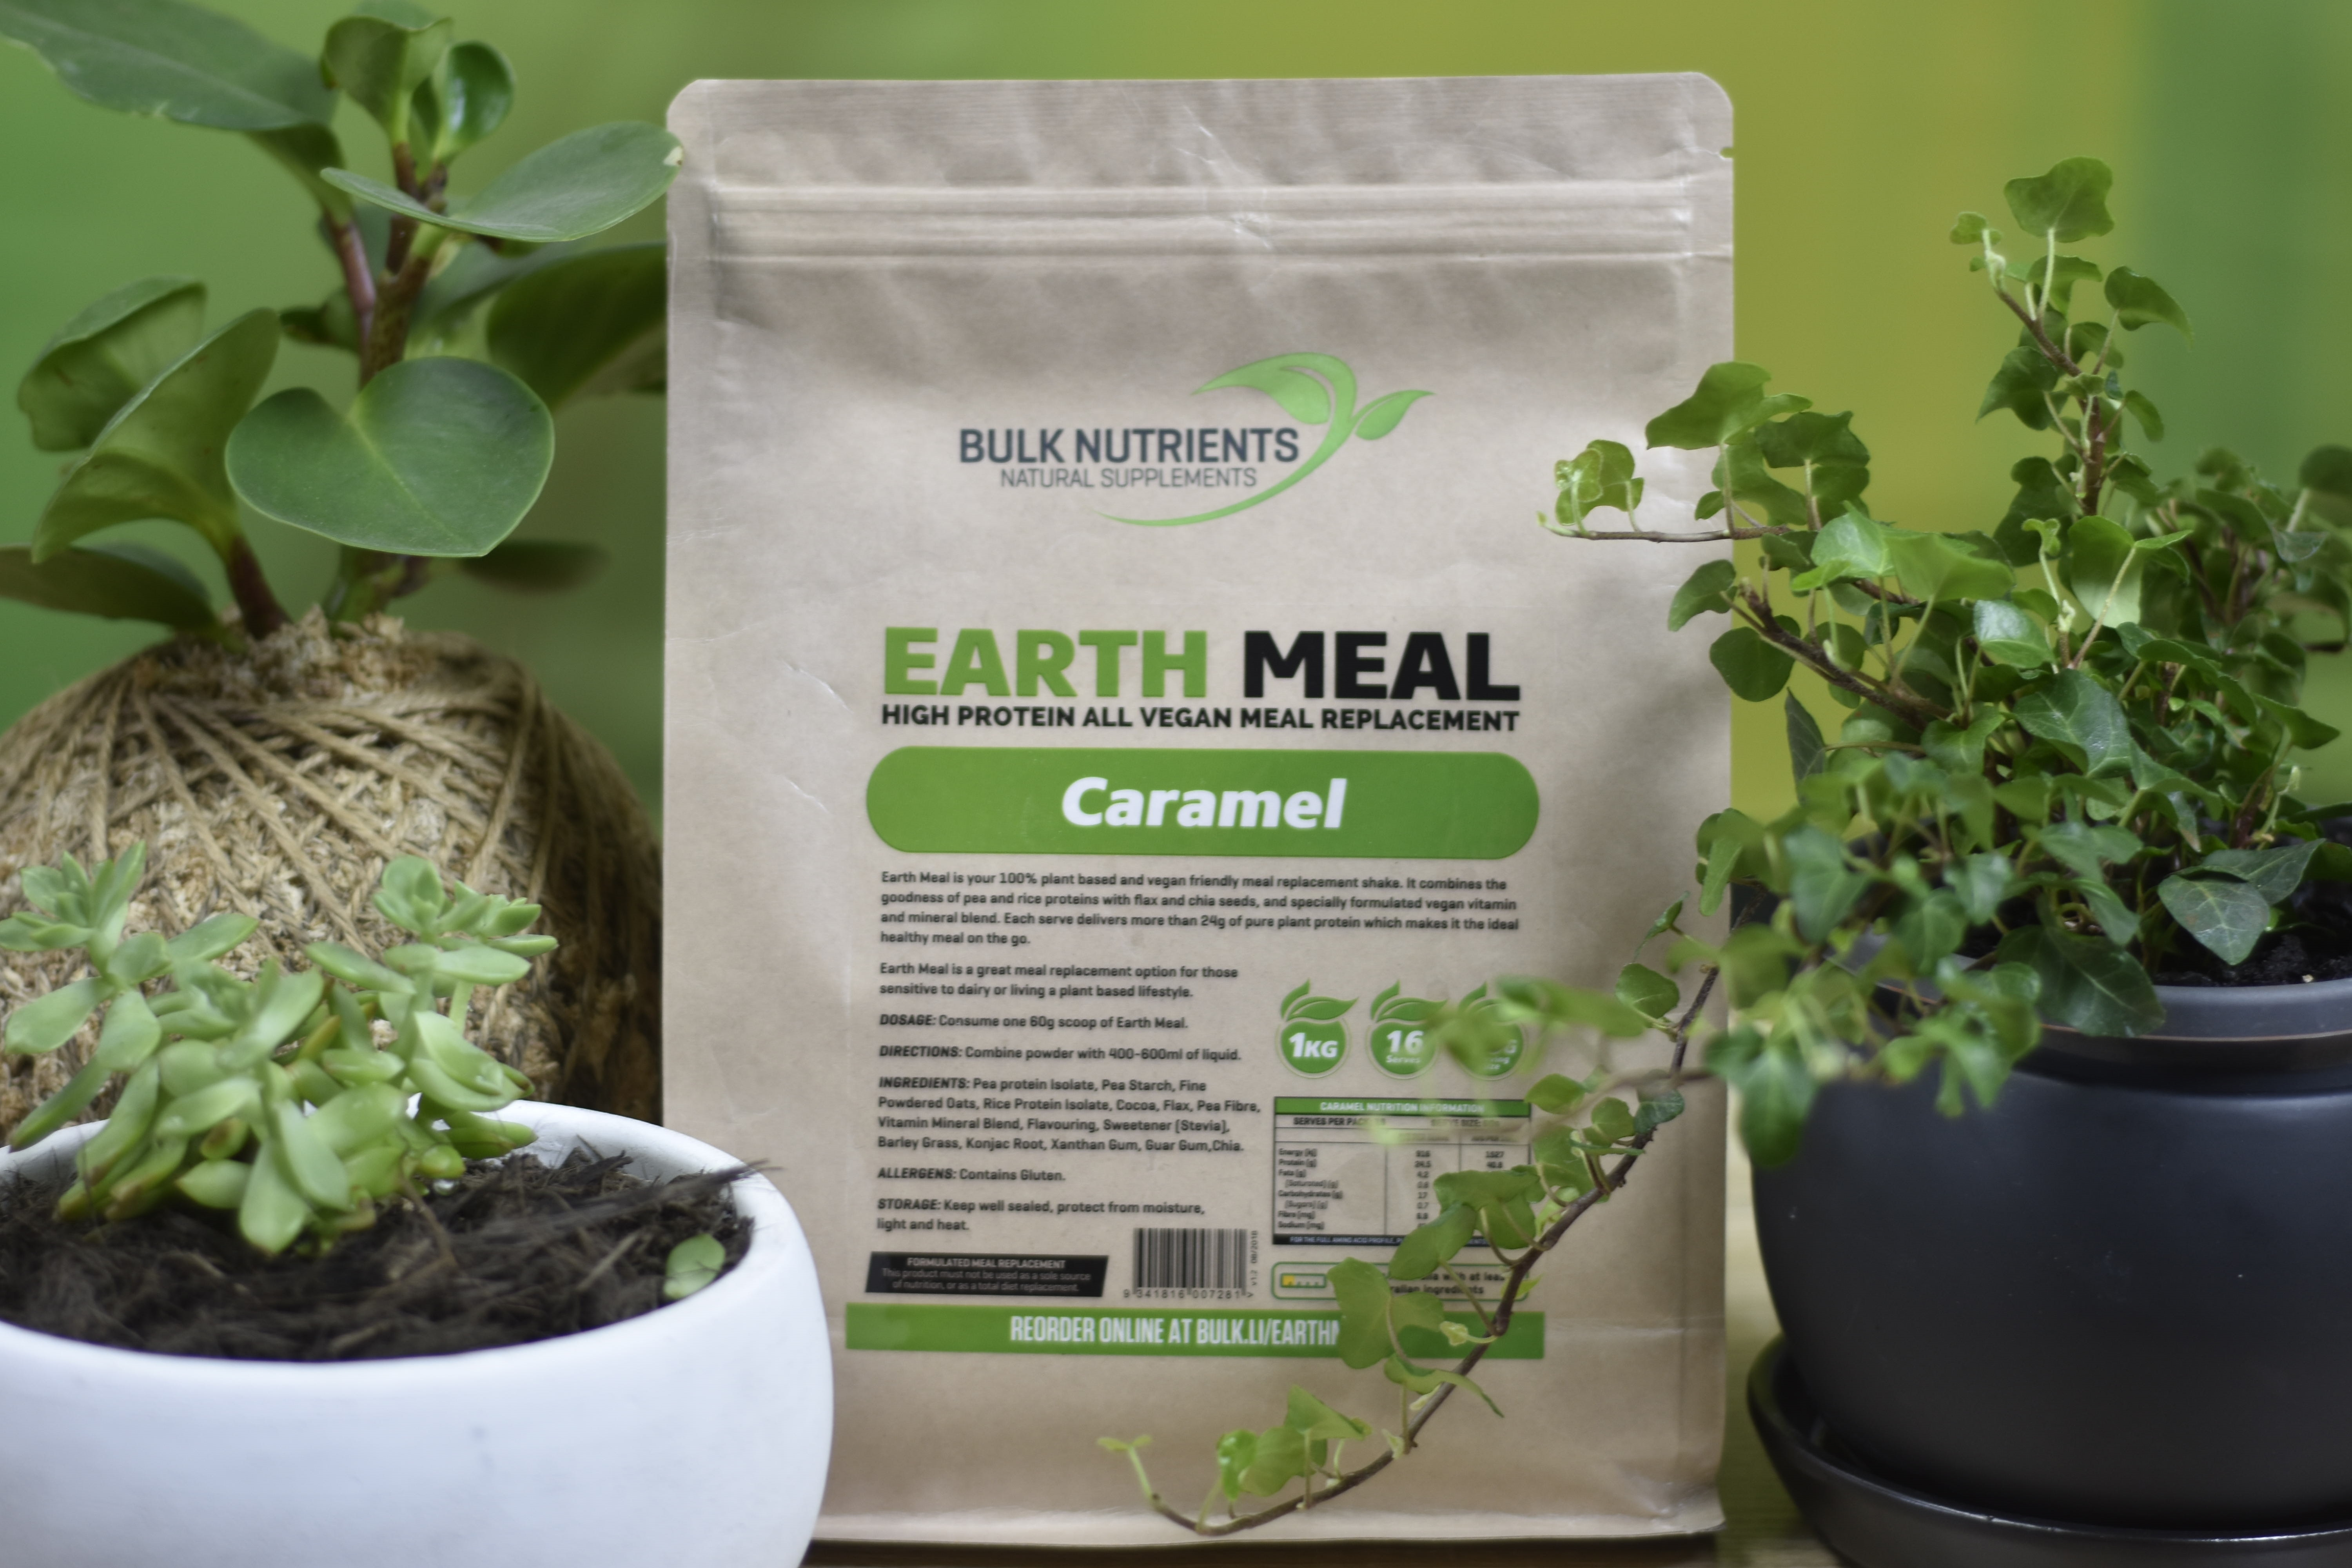 Earth Meal - The Complete Plant-Based Meal Replacement